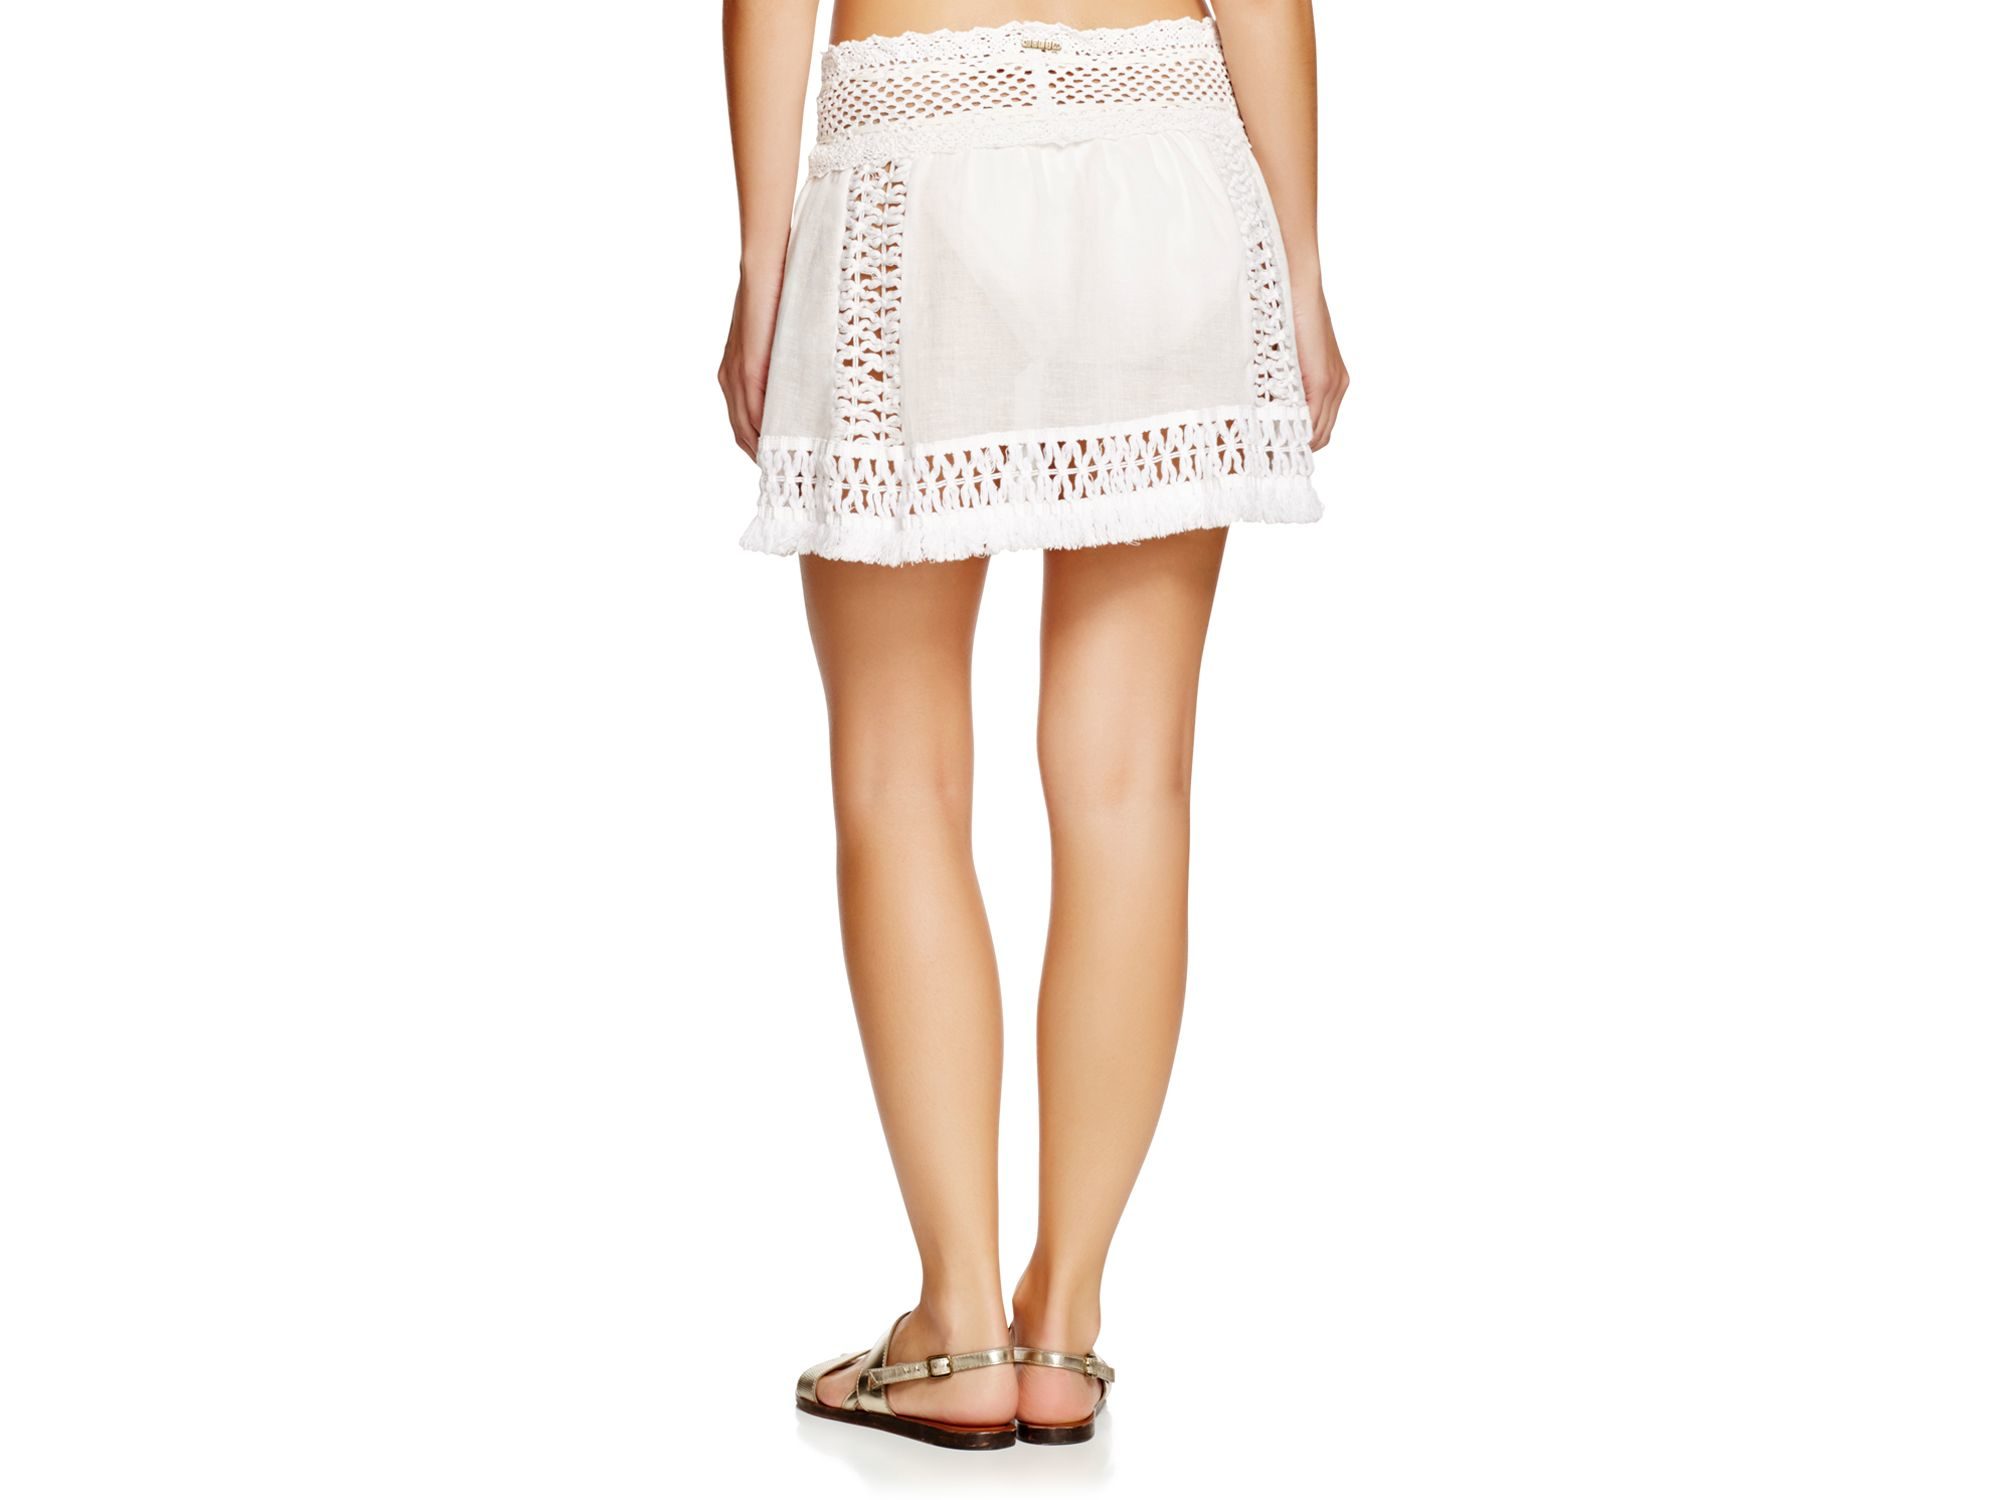 sofia by vix solid white crochet skirt swim cover up in